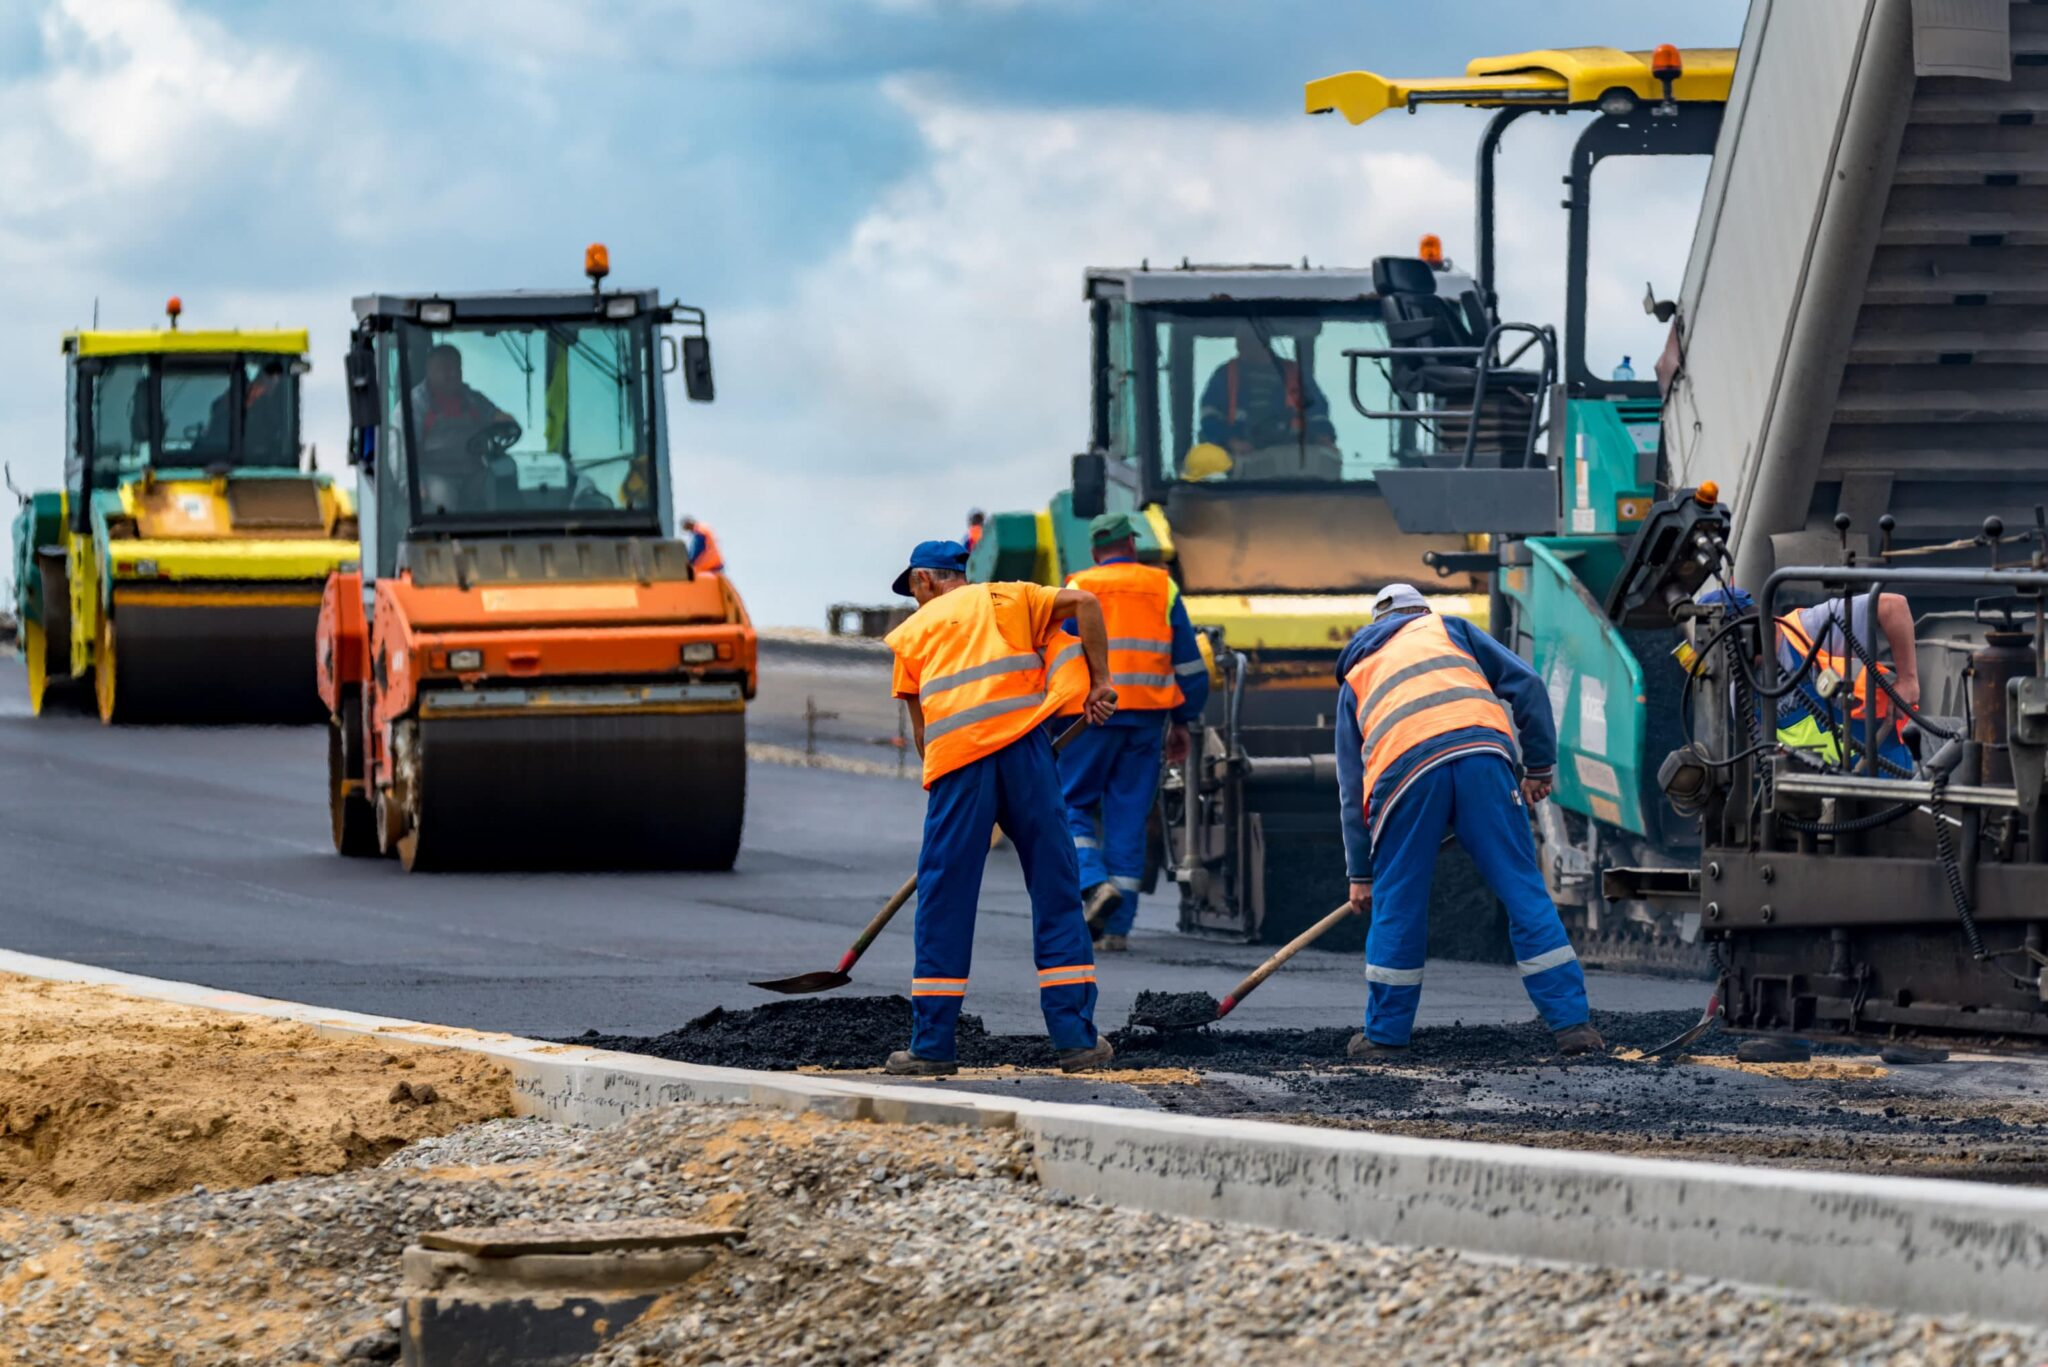 Construction workers at a roadside construction site applying pavement.